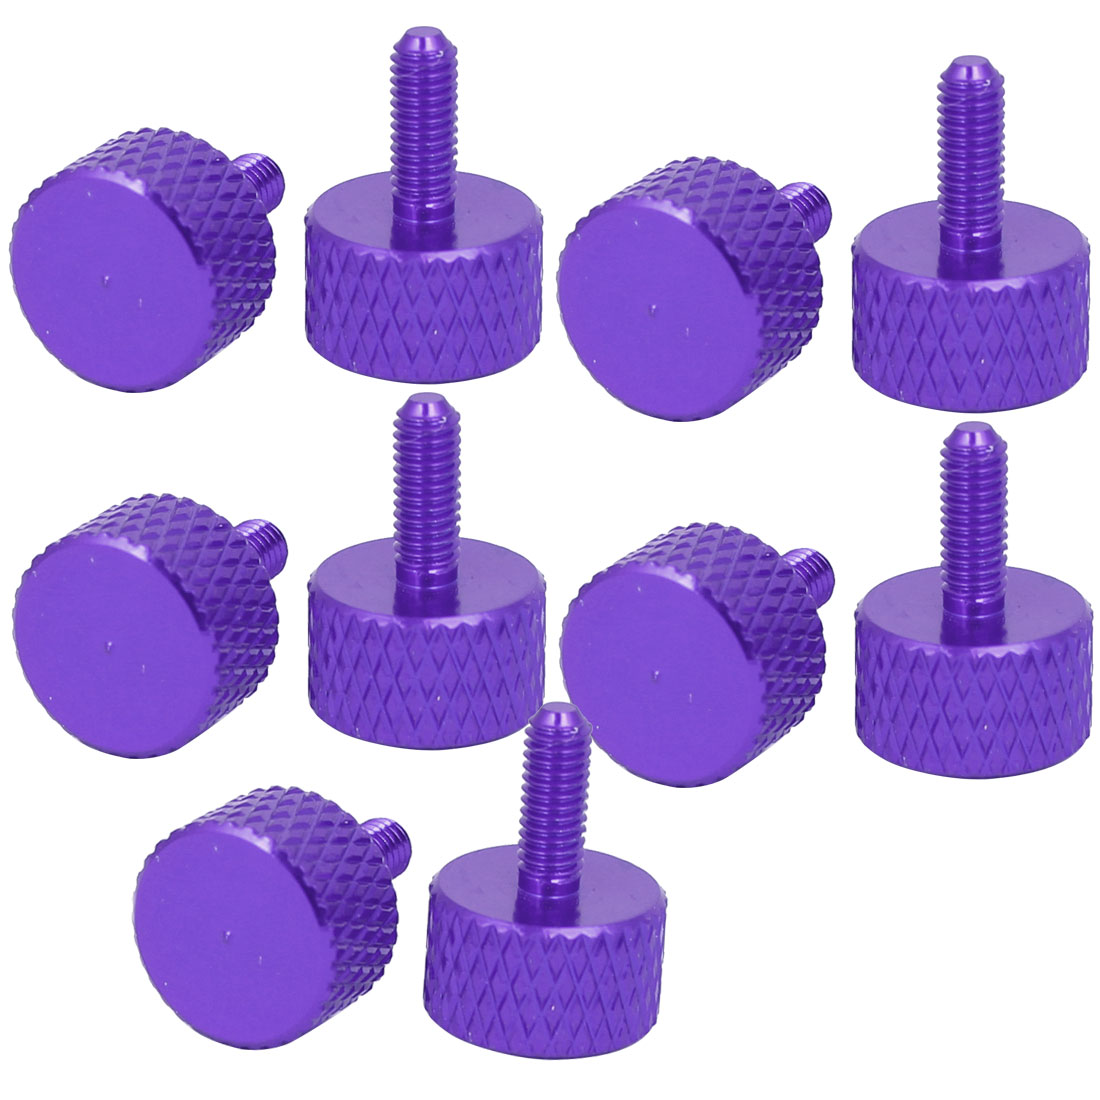 Computer PC Graphics Card Fully Threaded Knurled Thumb Screws Purple M3x8mm 10pcs